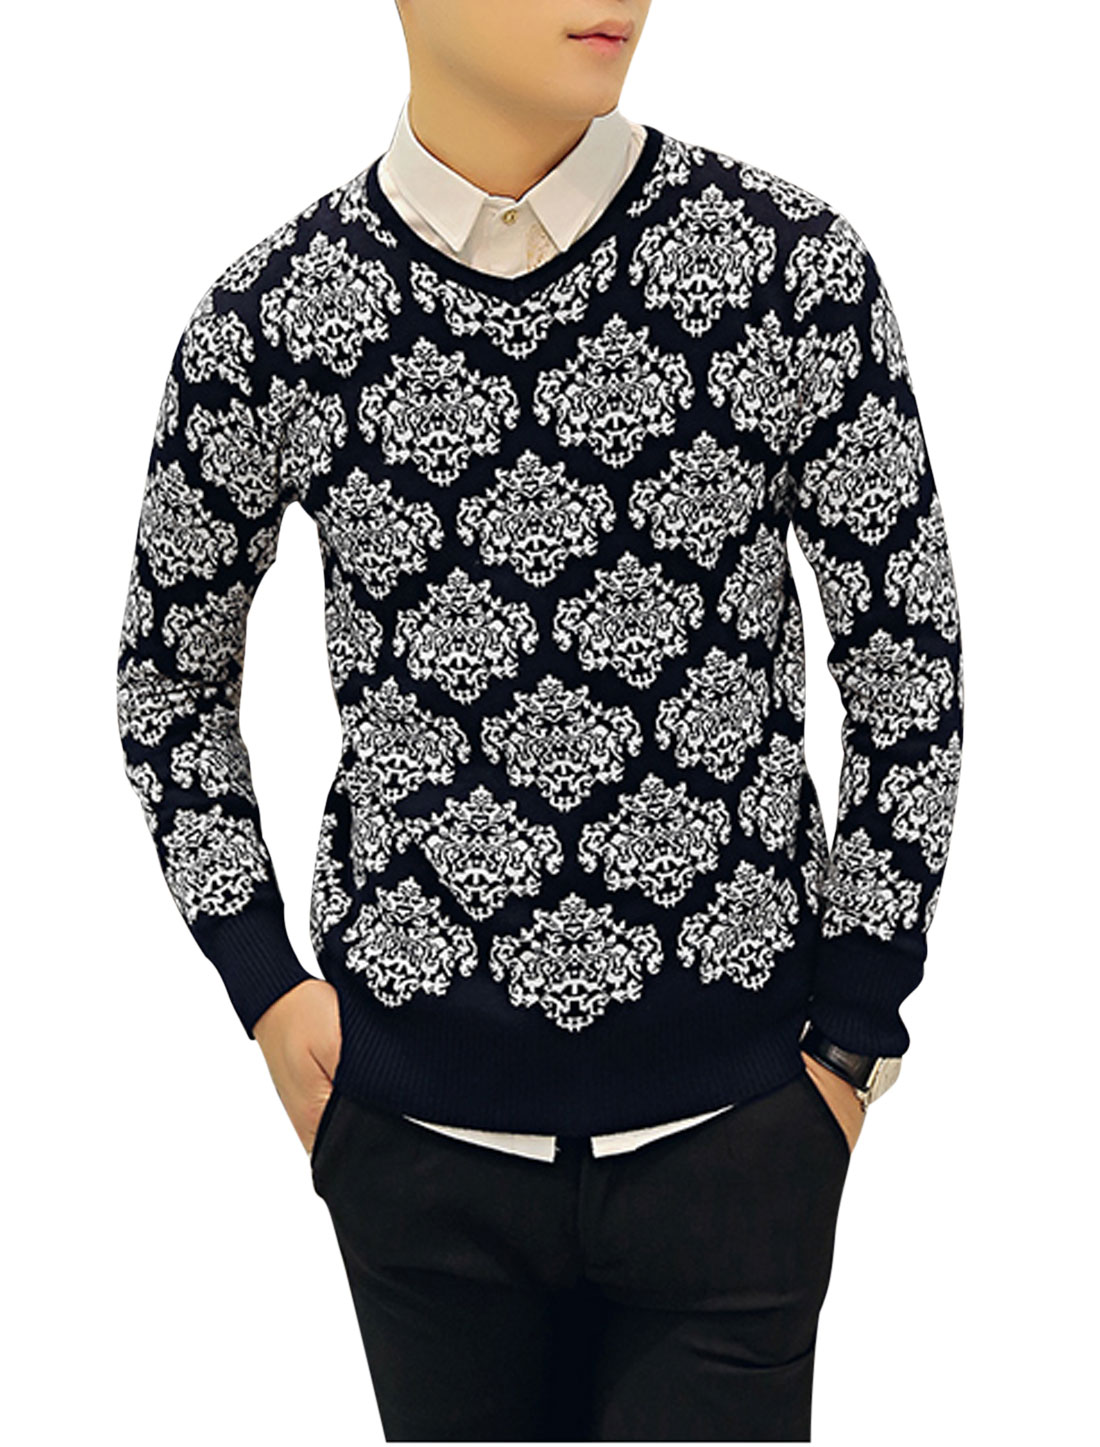 Man Jacquard Pattern V Neck Long Sleeve Knit Shirt Navy Blue White S